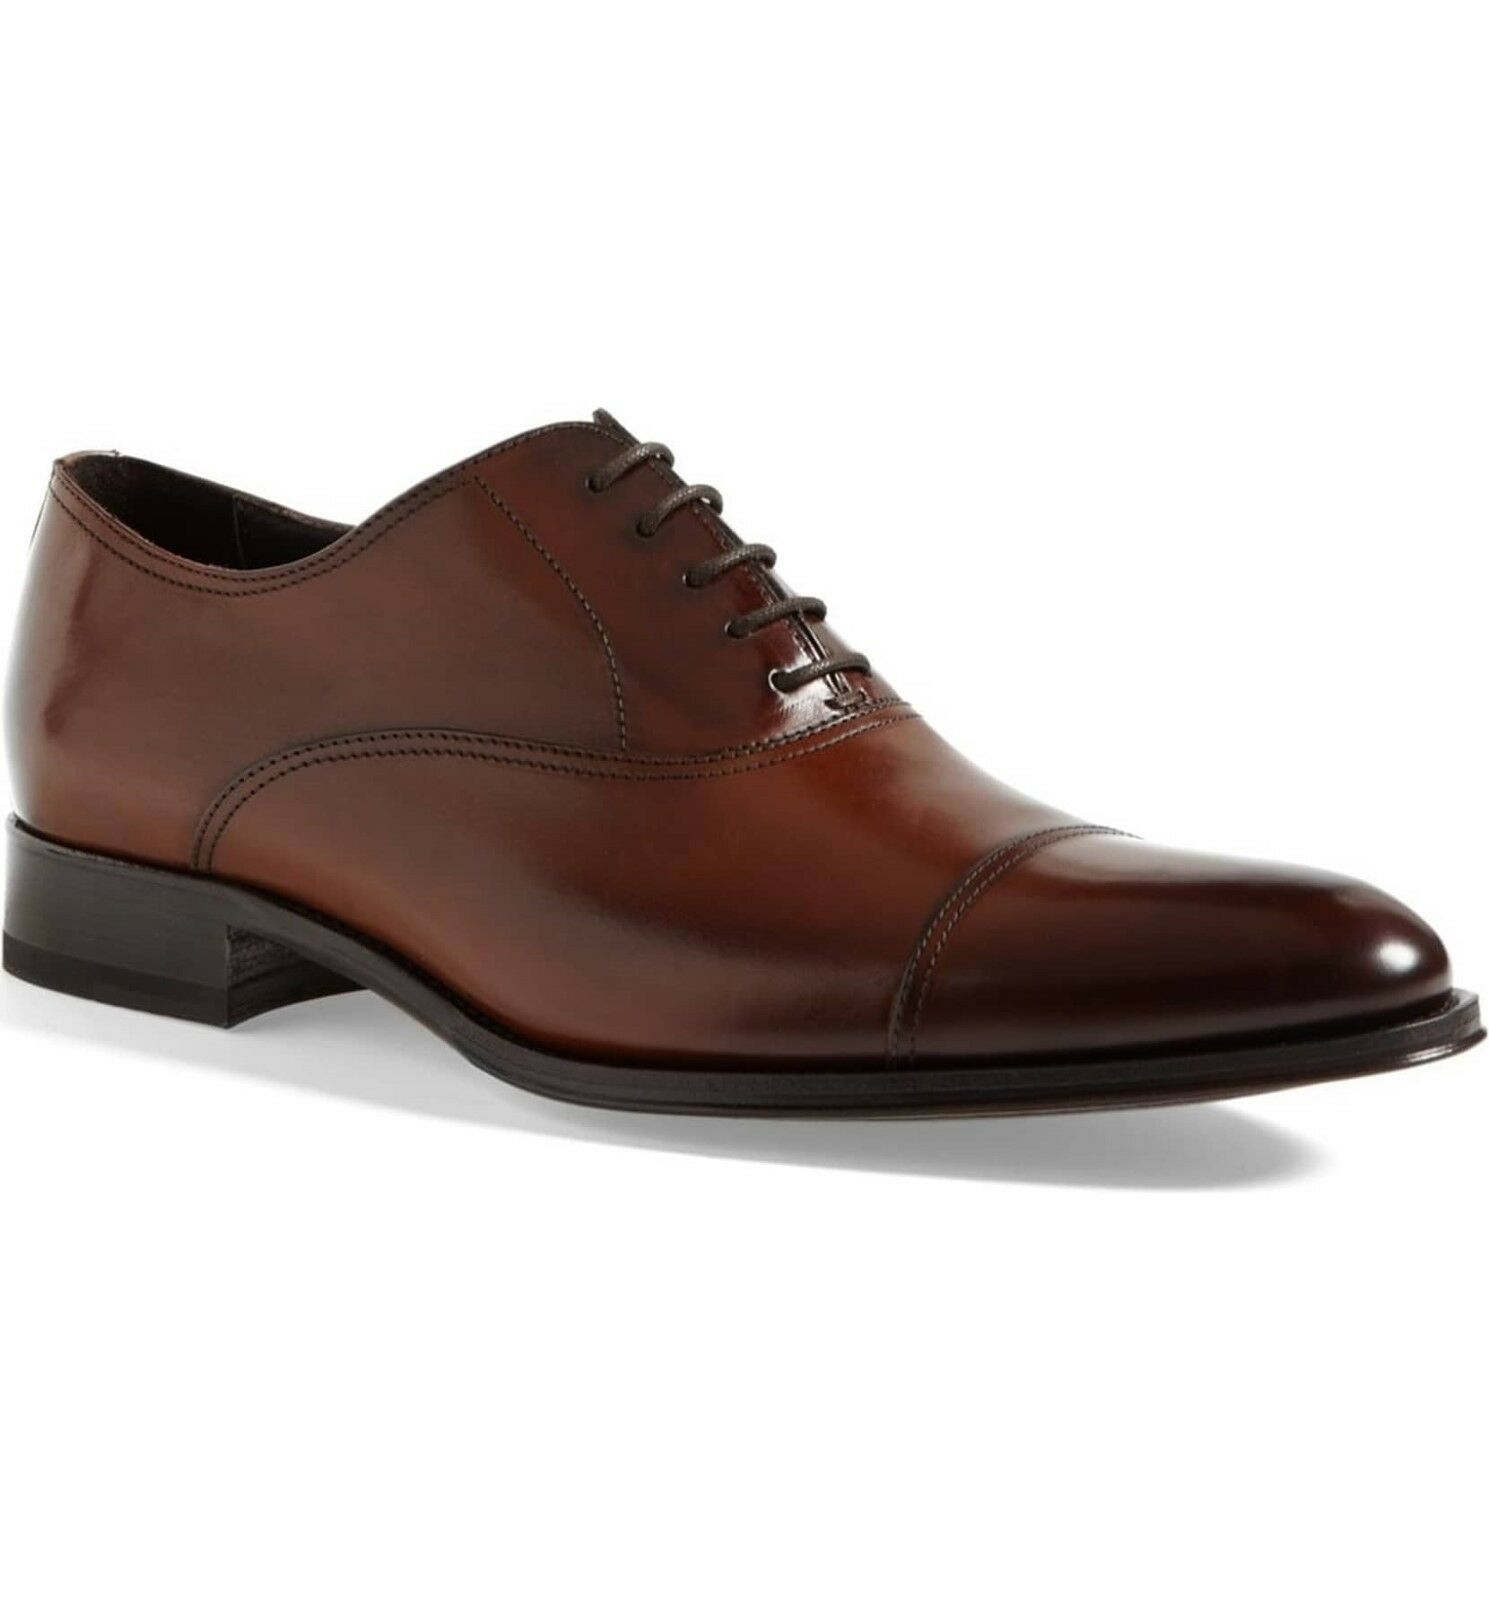 To Boot New York Men's Brandon Cap Toe Oxford Size 8 Cognac Leather MSRP  395